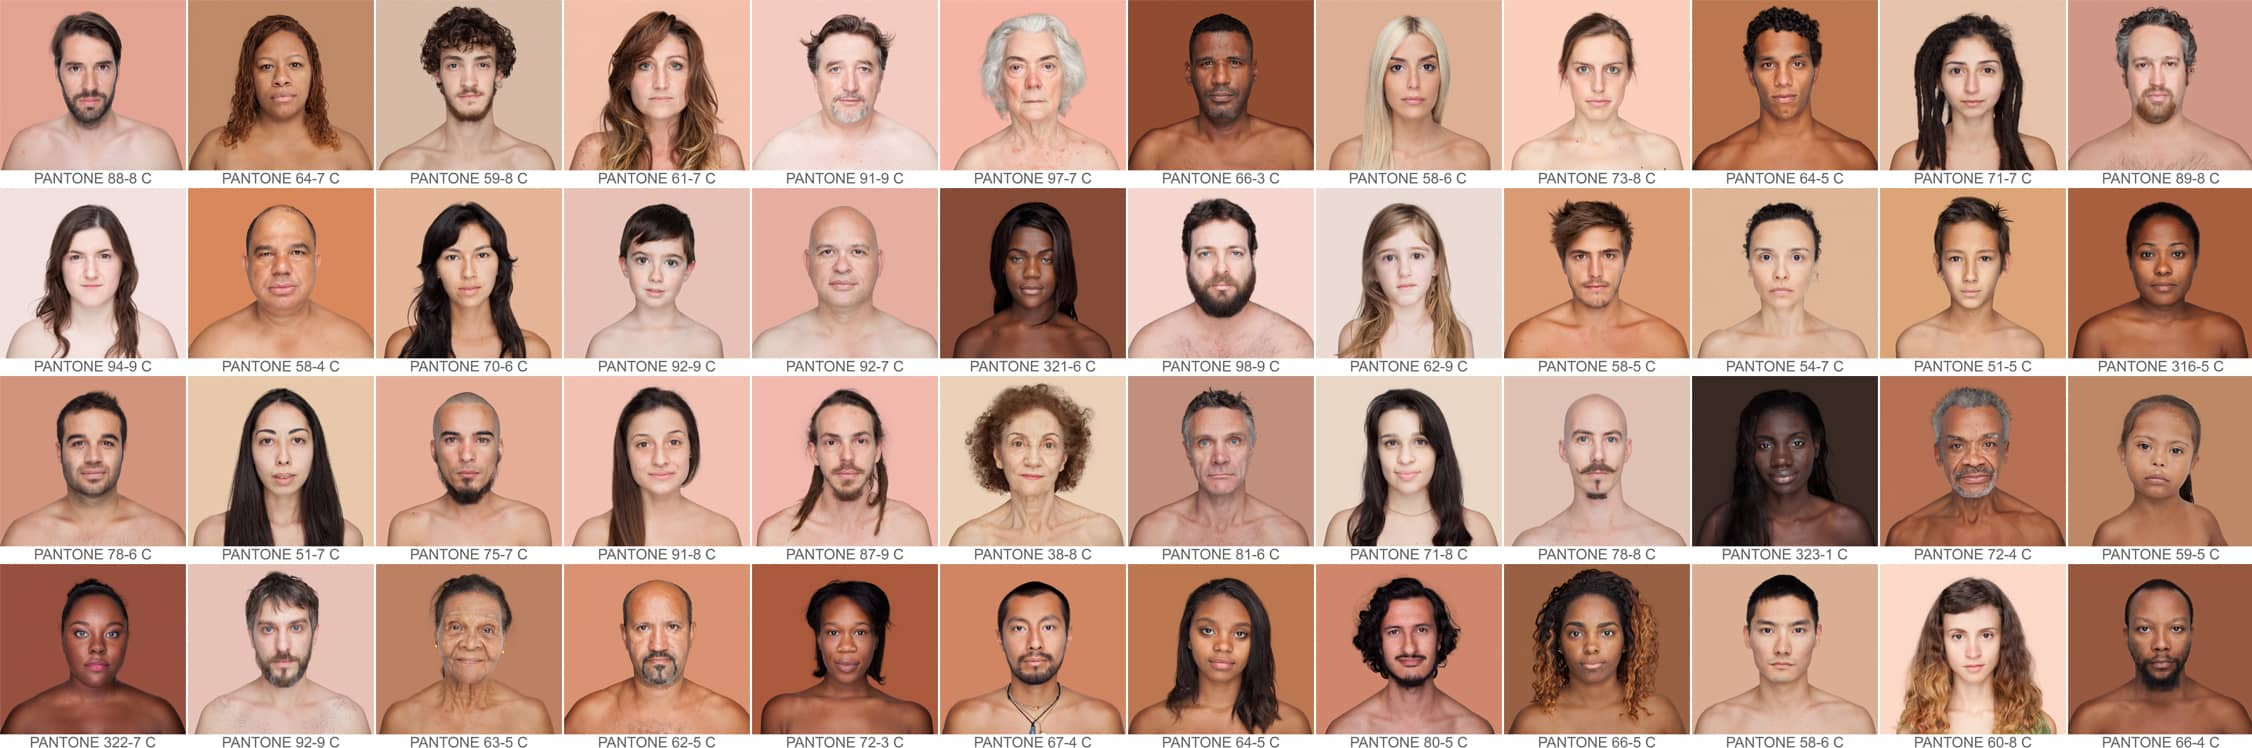 Images of different people